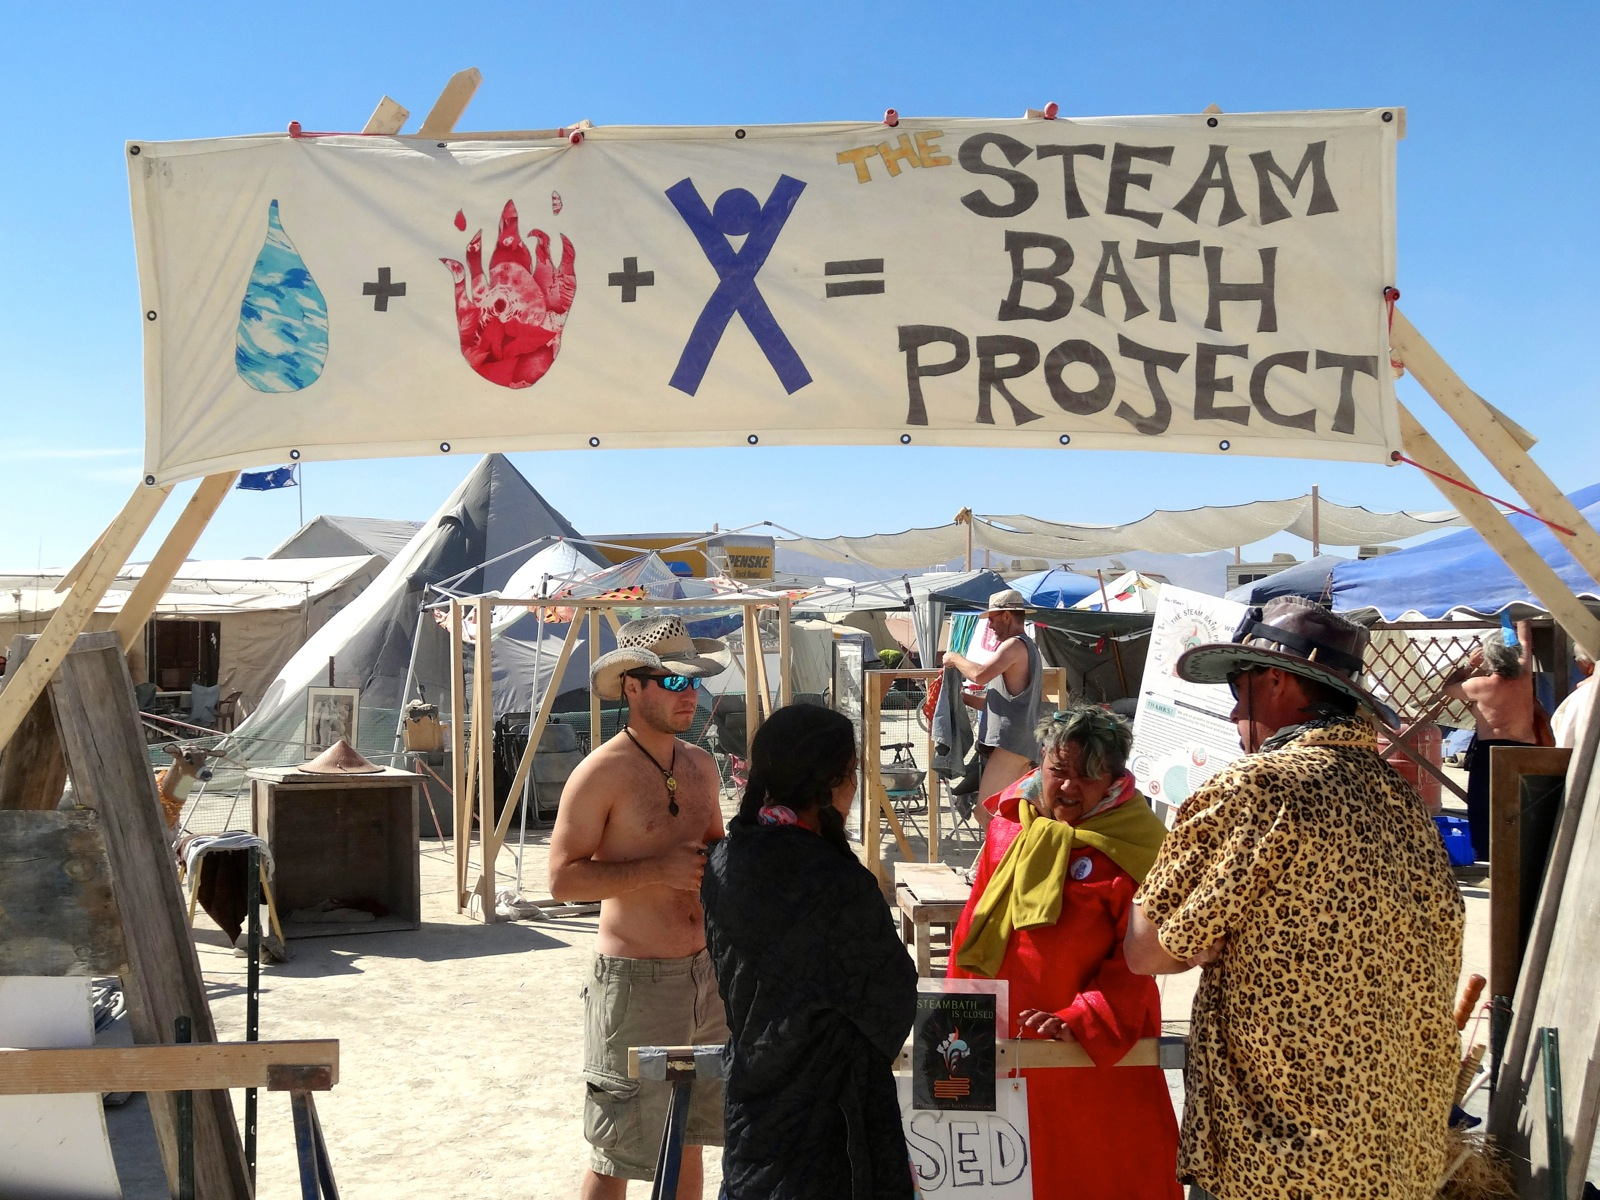 Burning Man 2012 Chip Conley Steam Bath Project